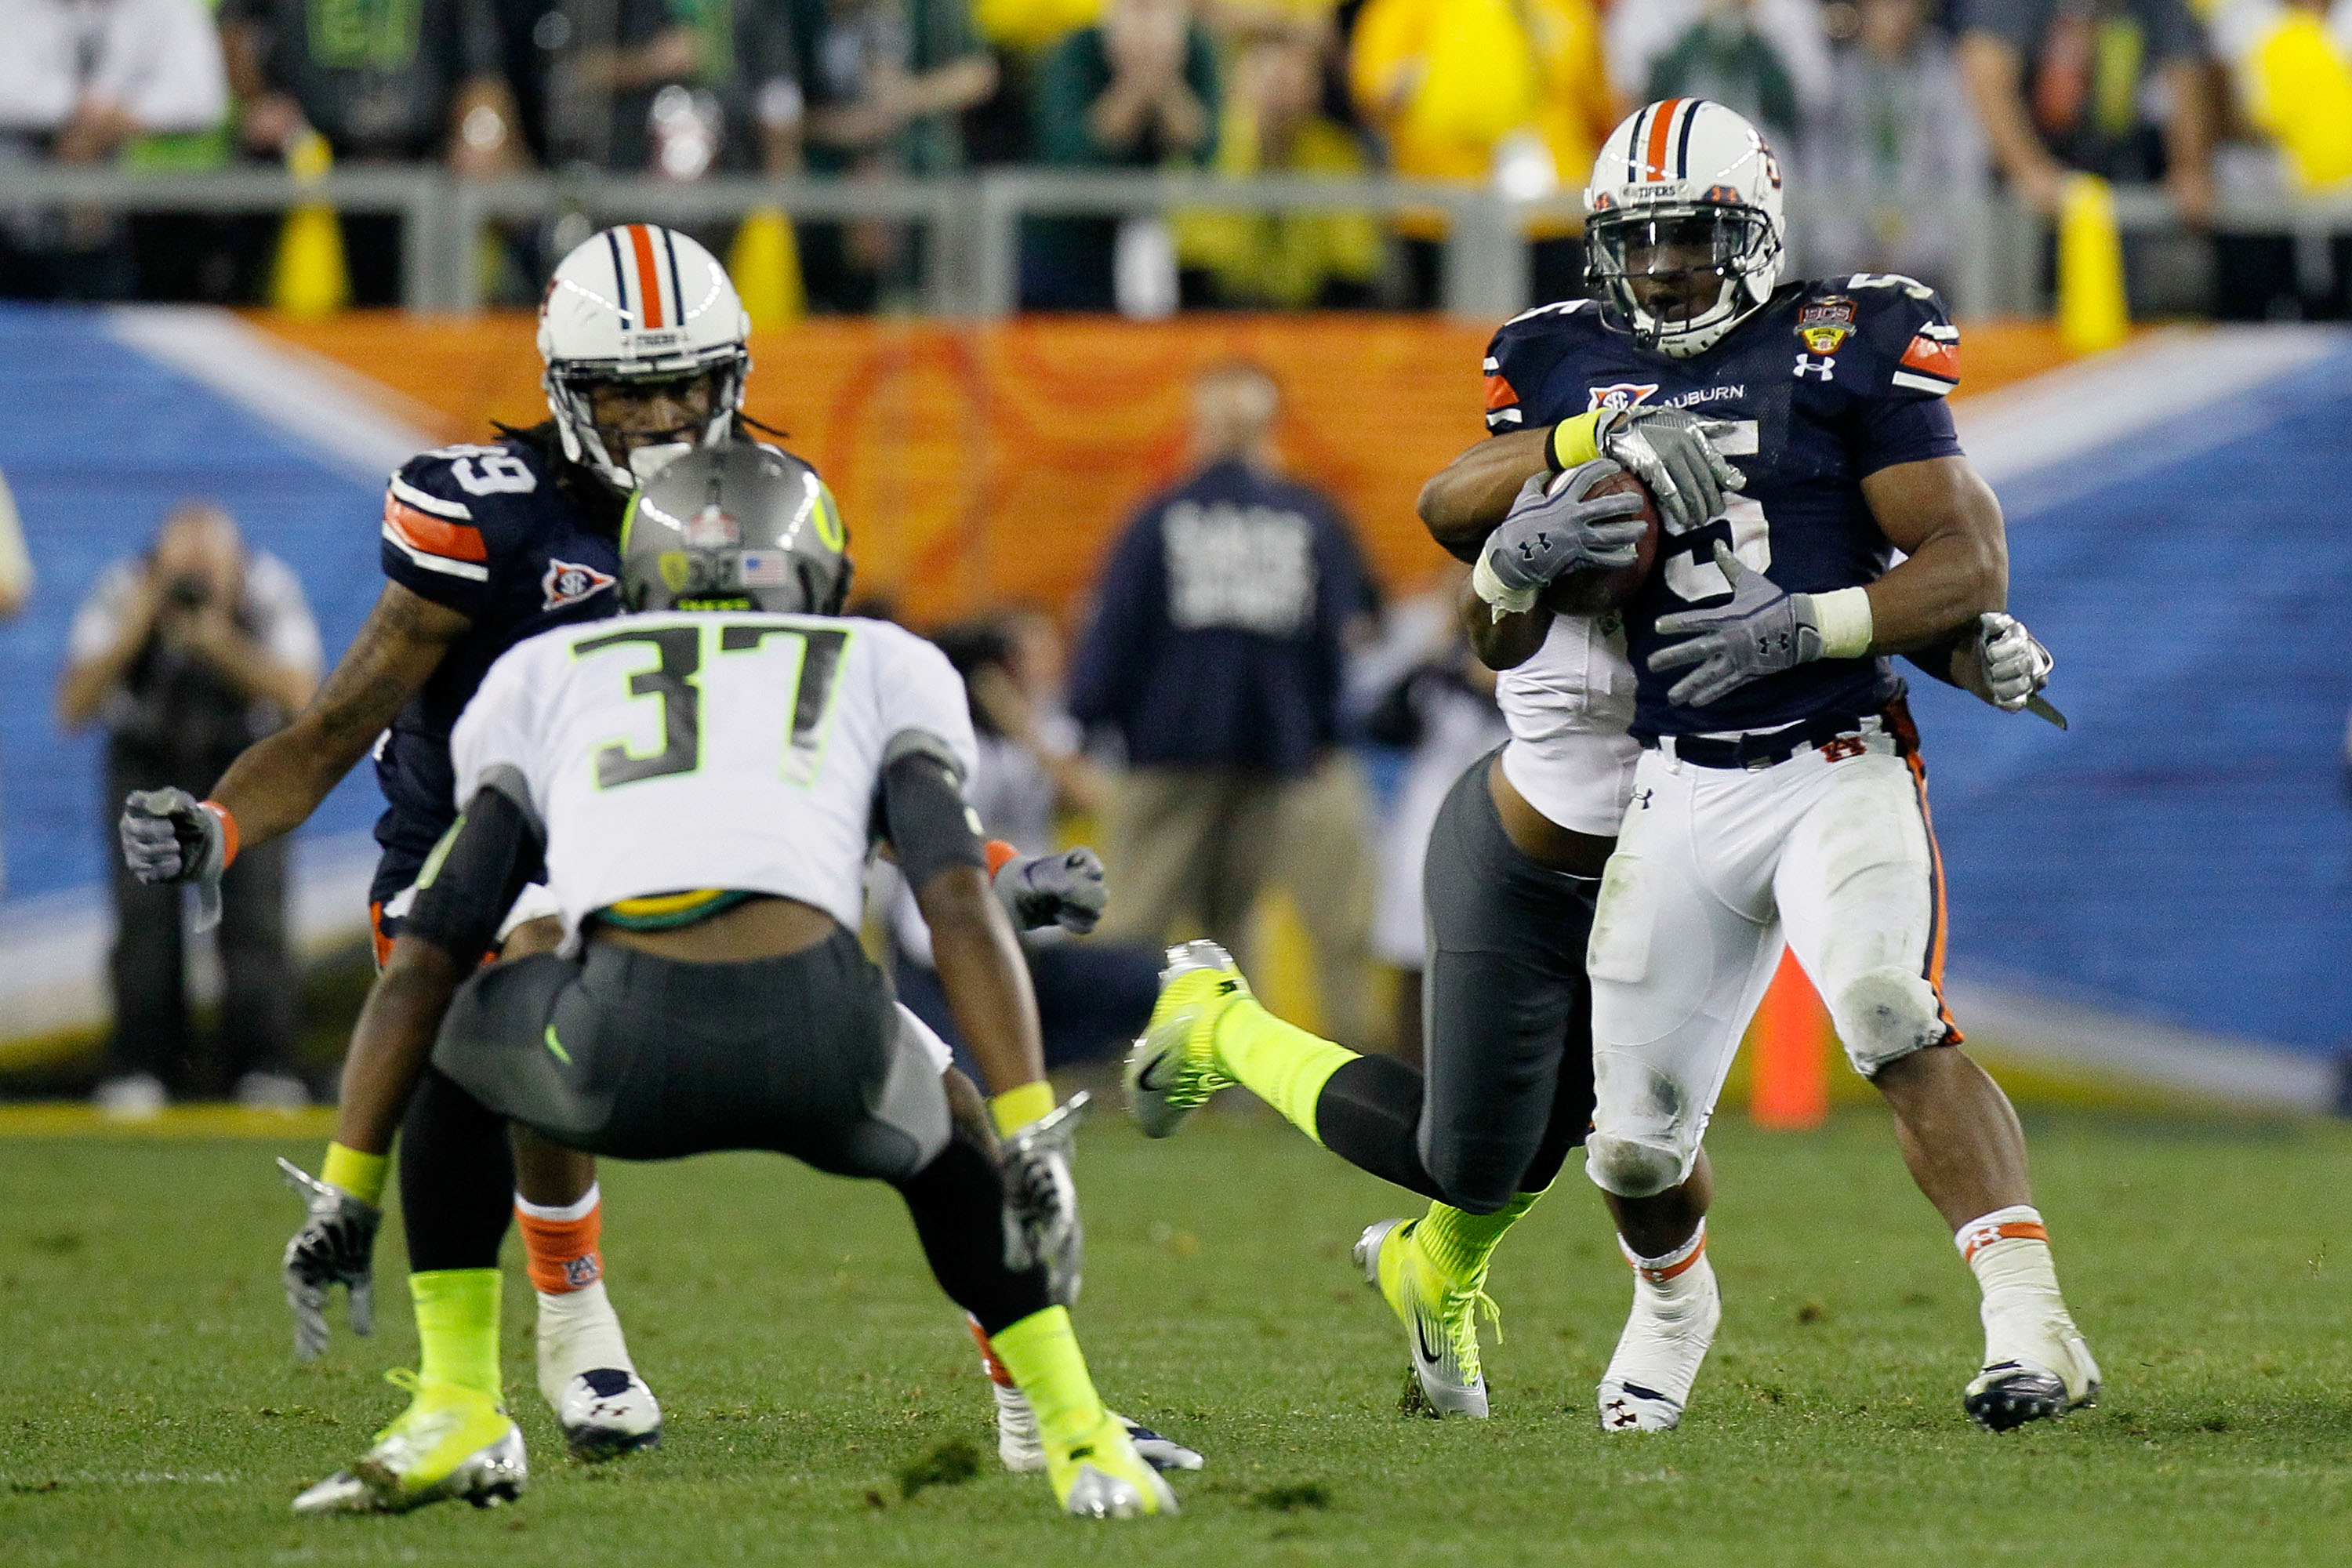 GLENDALE, AZ - JANUARY 10:  Michael Dyer #5 of the Auburn Tigers tries to avoid the tackle of the Oregon Ducks during the Tostitos BCS National Championship Game at University of Phoenix Stadium on January 10, 2011 in Glendale, Arizona.  (Photo by Kevin C